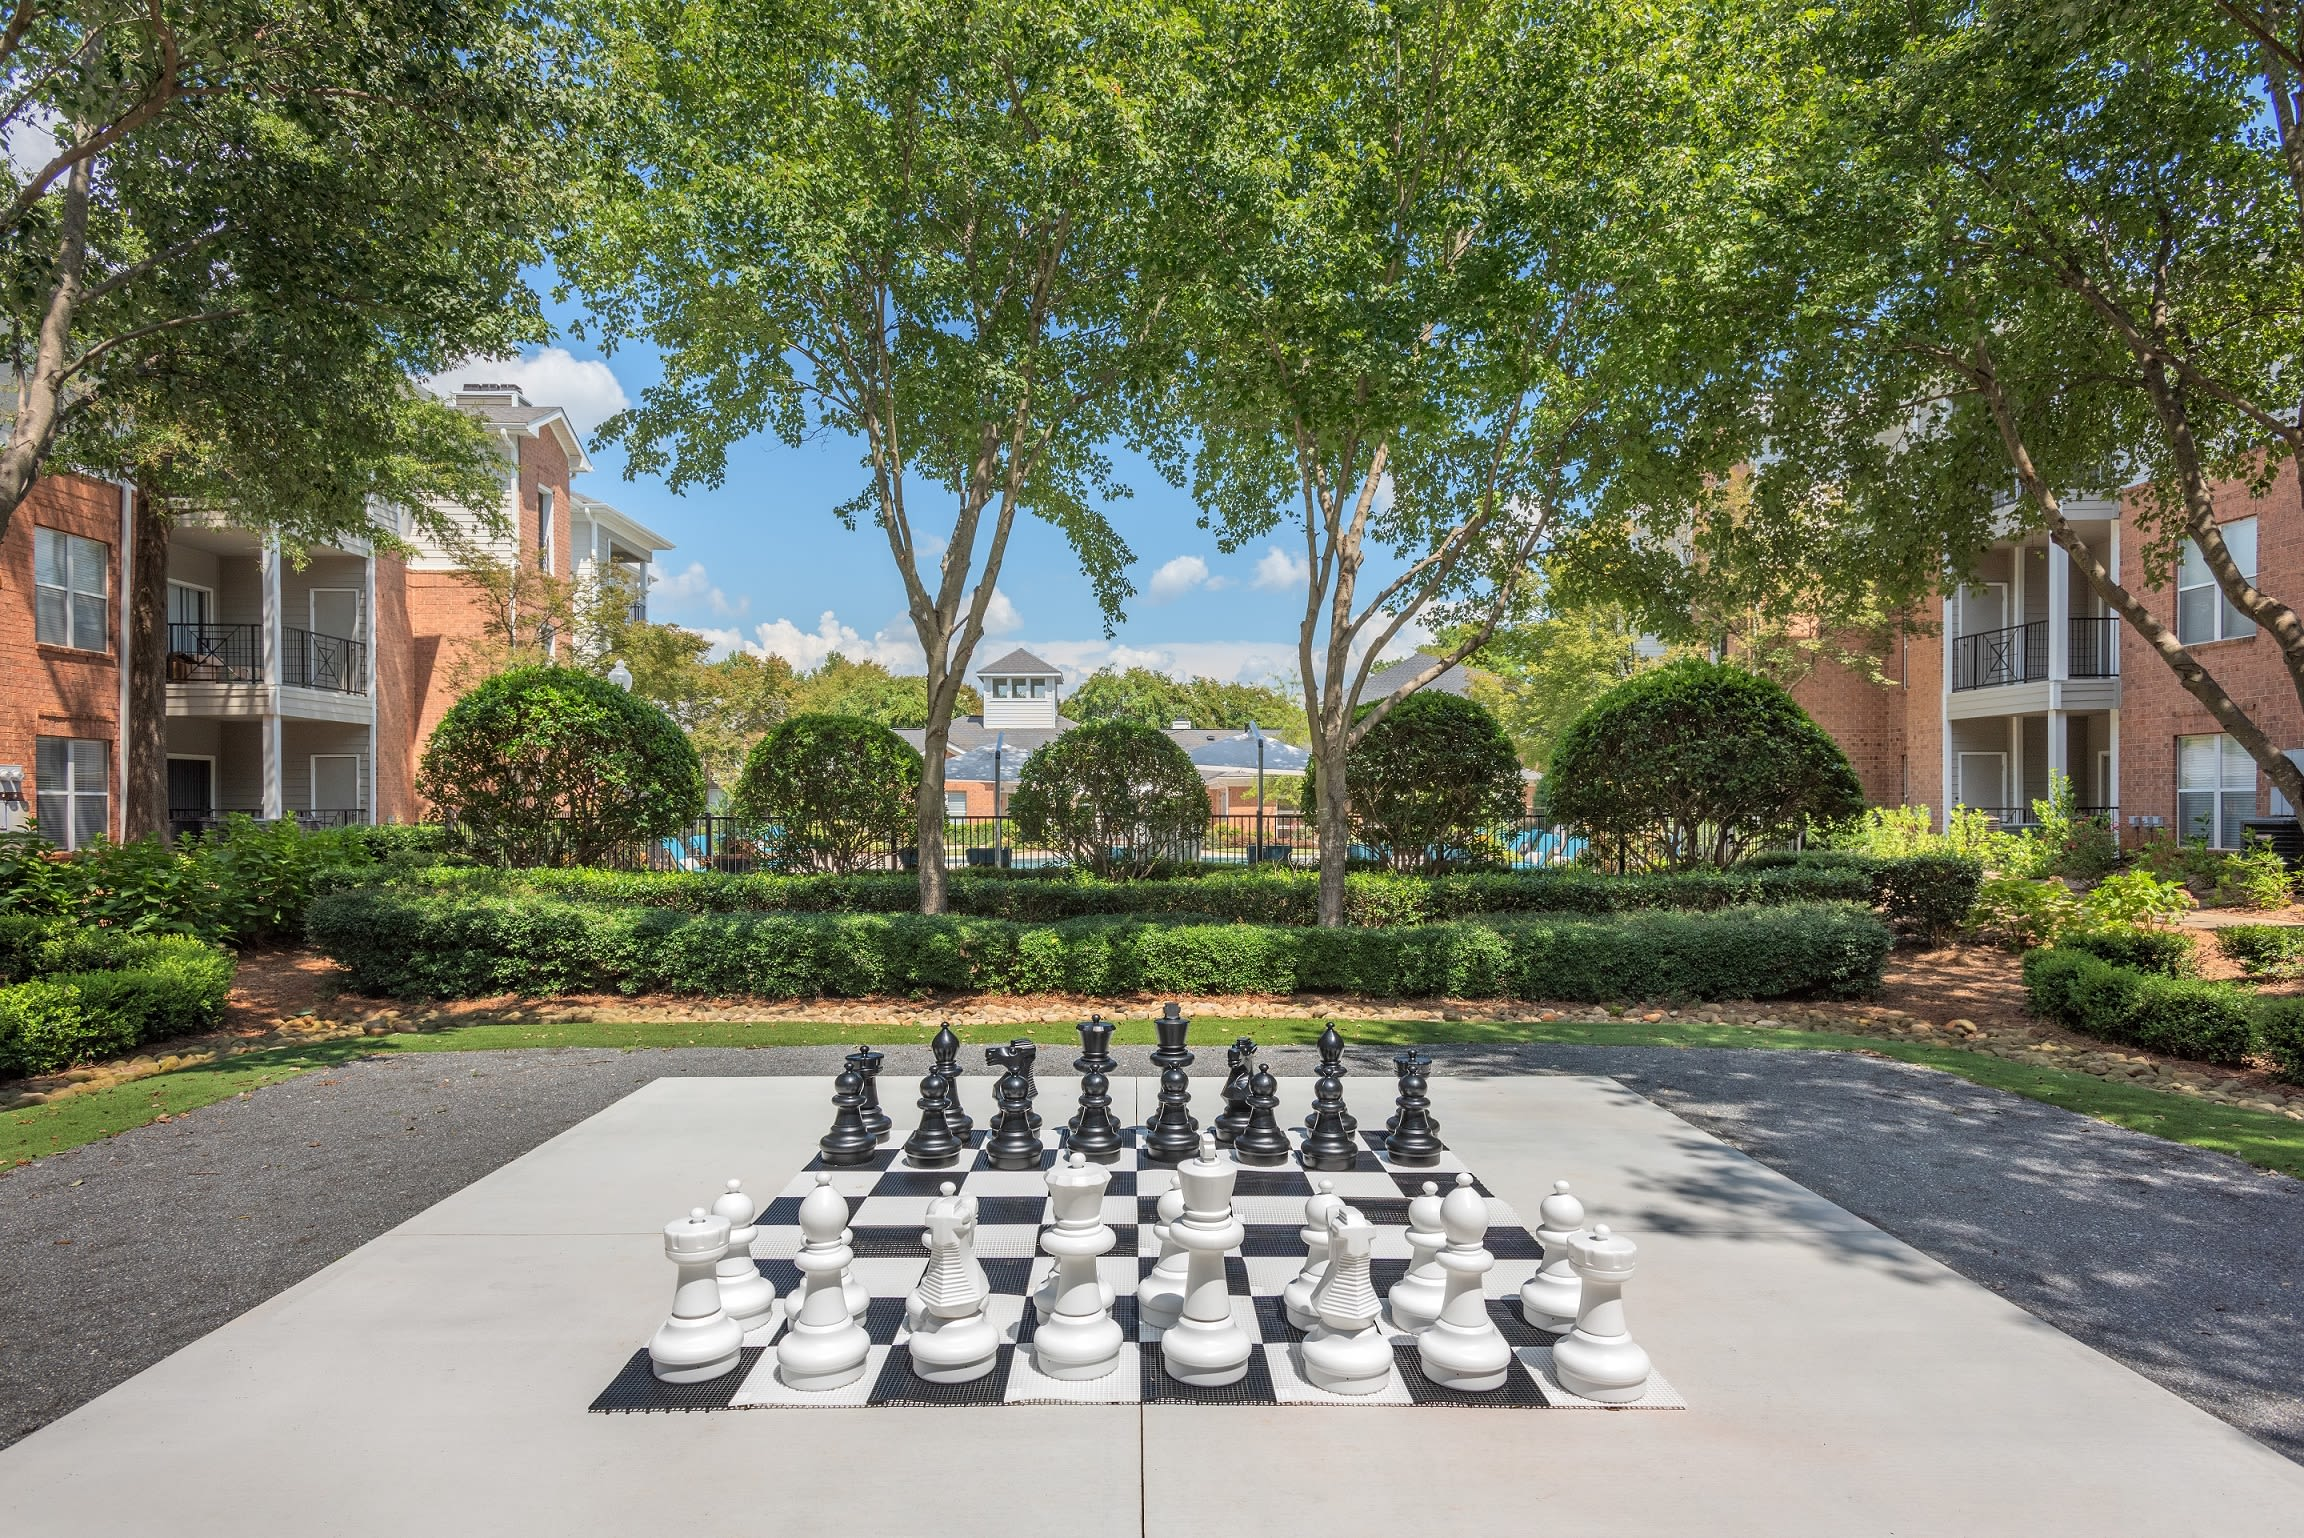 Outdoor jumbo chess at Presley Oaks in Charlotte, North Carolina